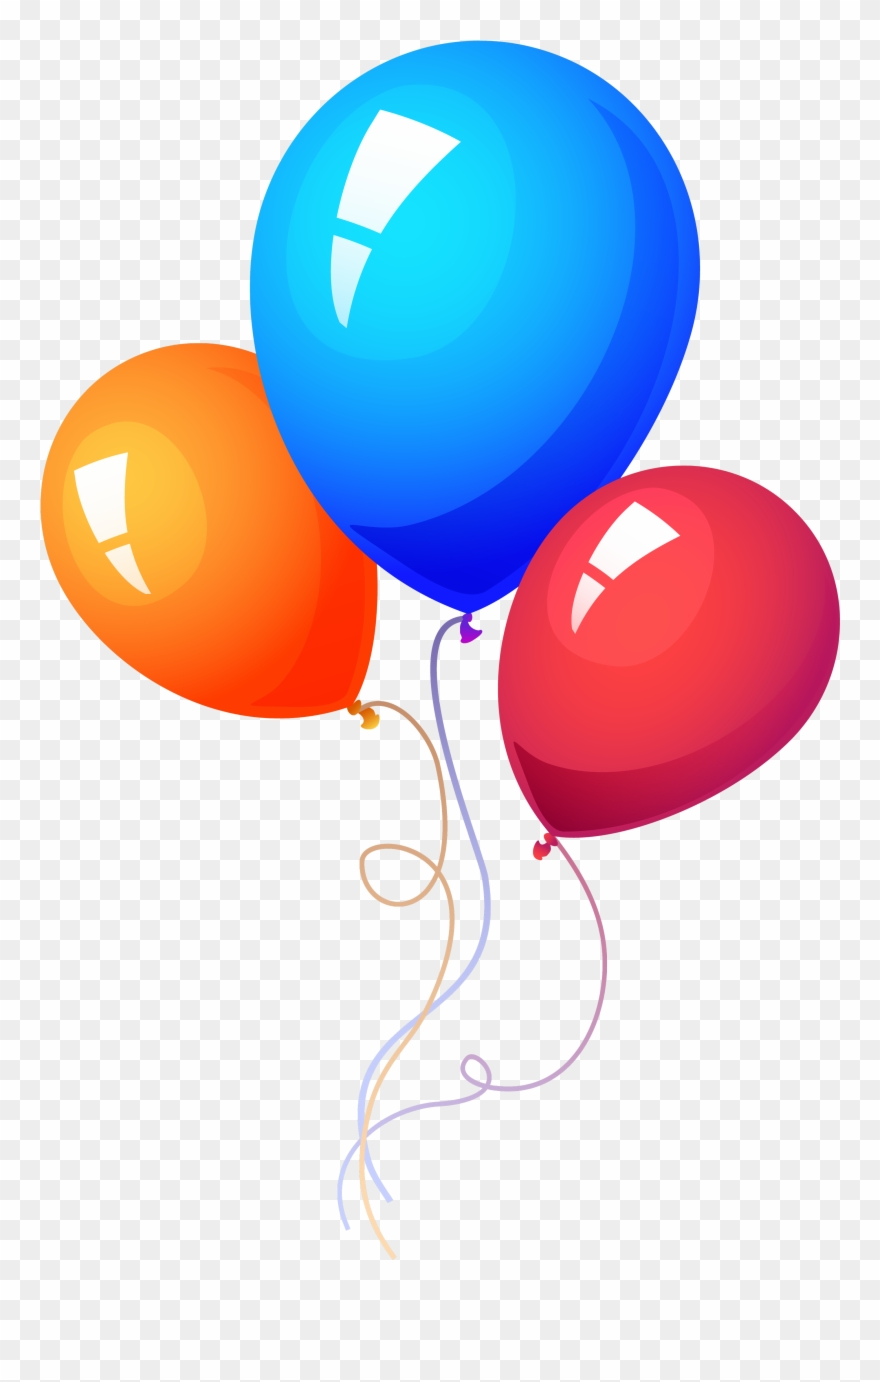 Balloon Images Png.